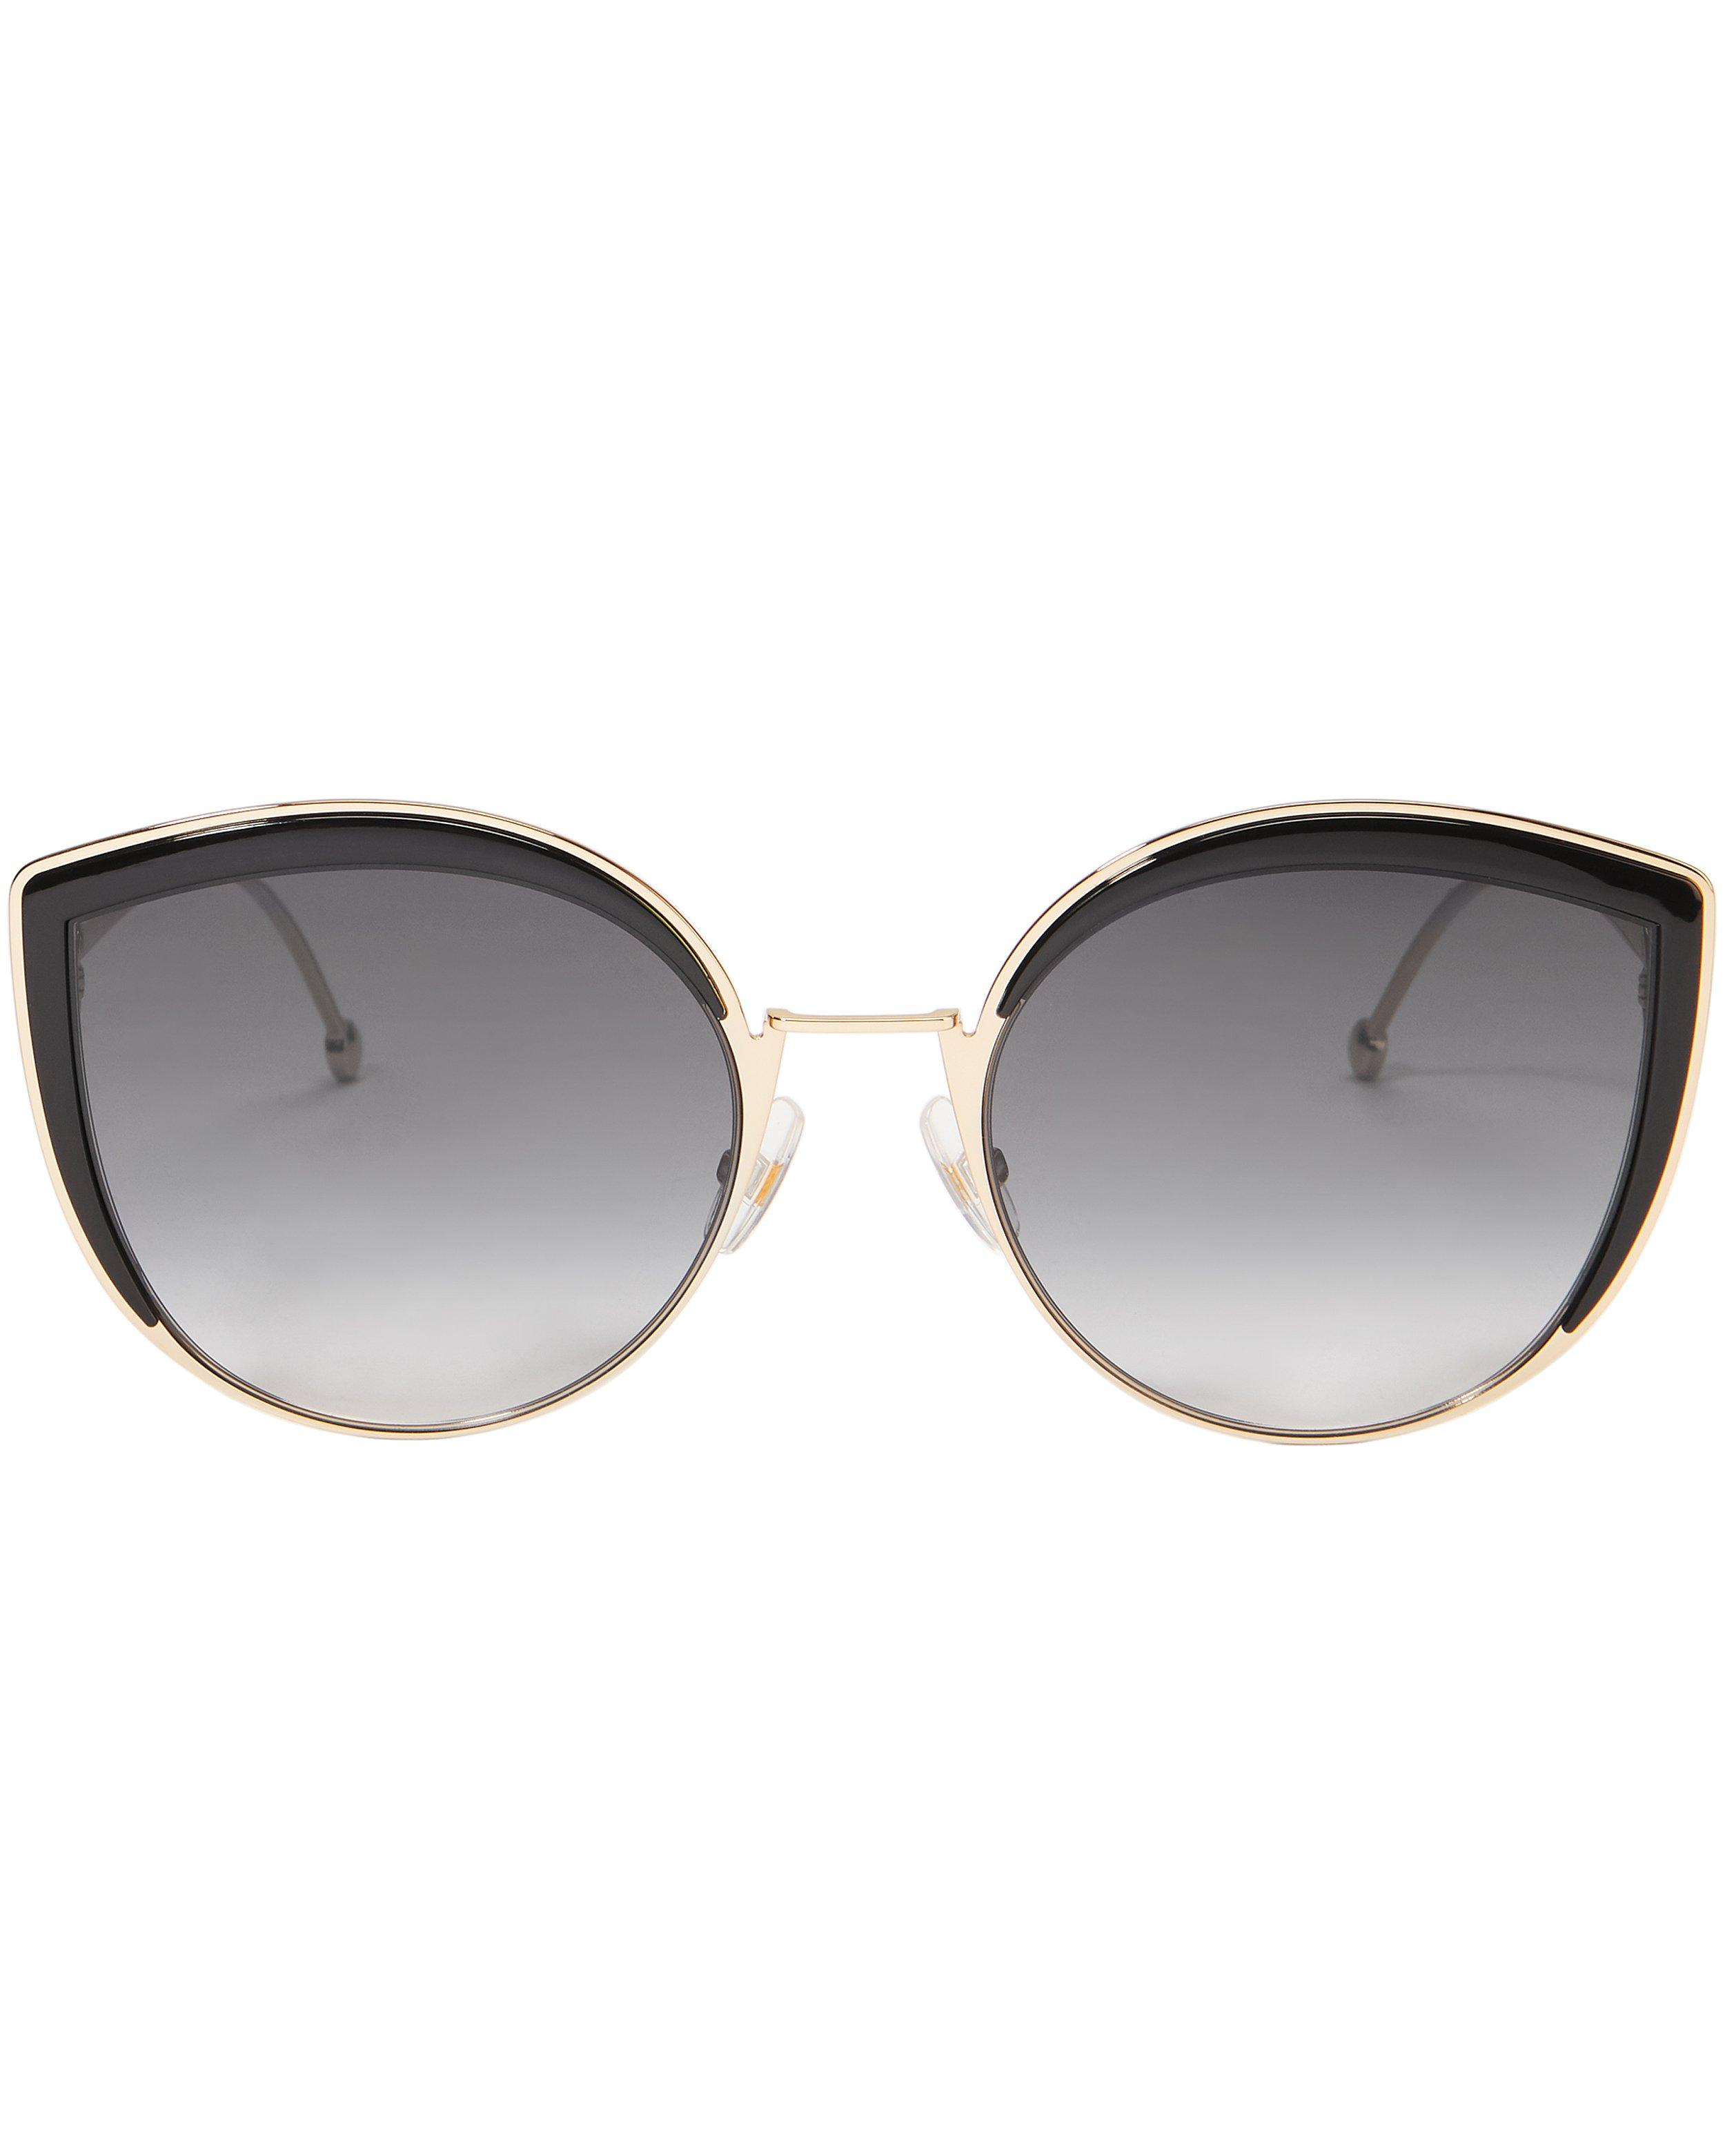 Fendi Grey Gradient Cat Eye Sunglasses